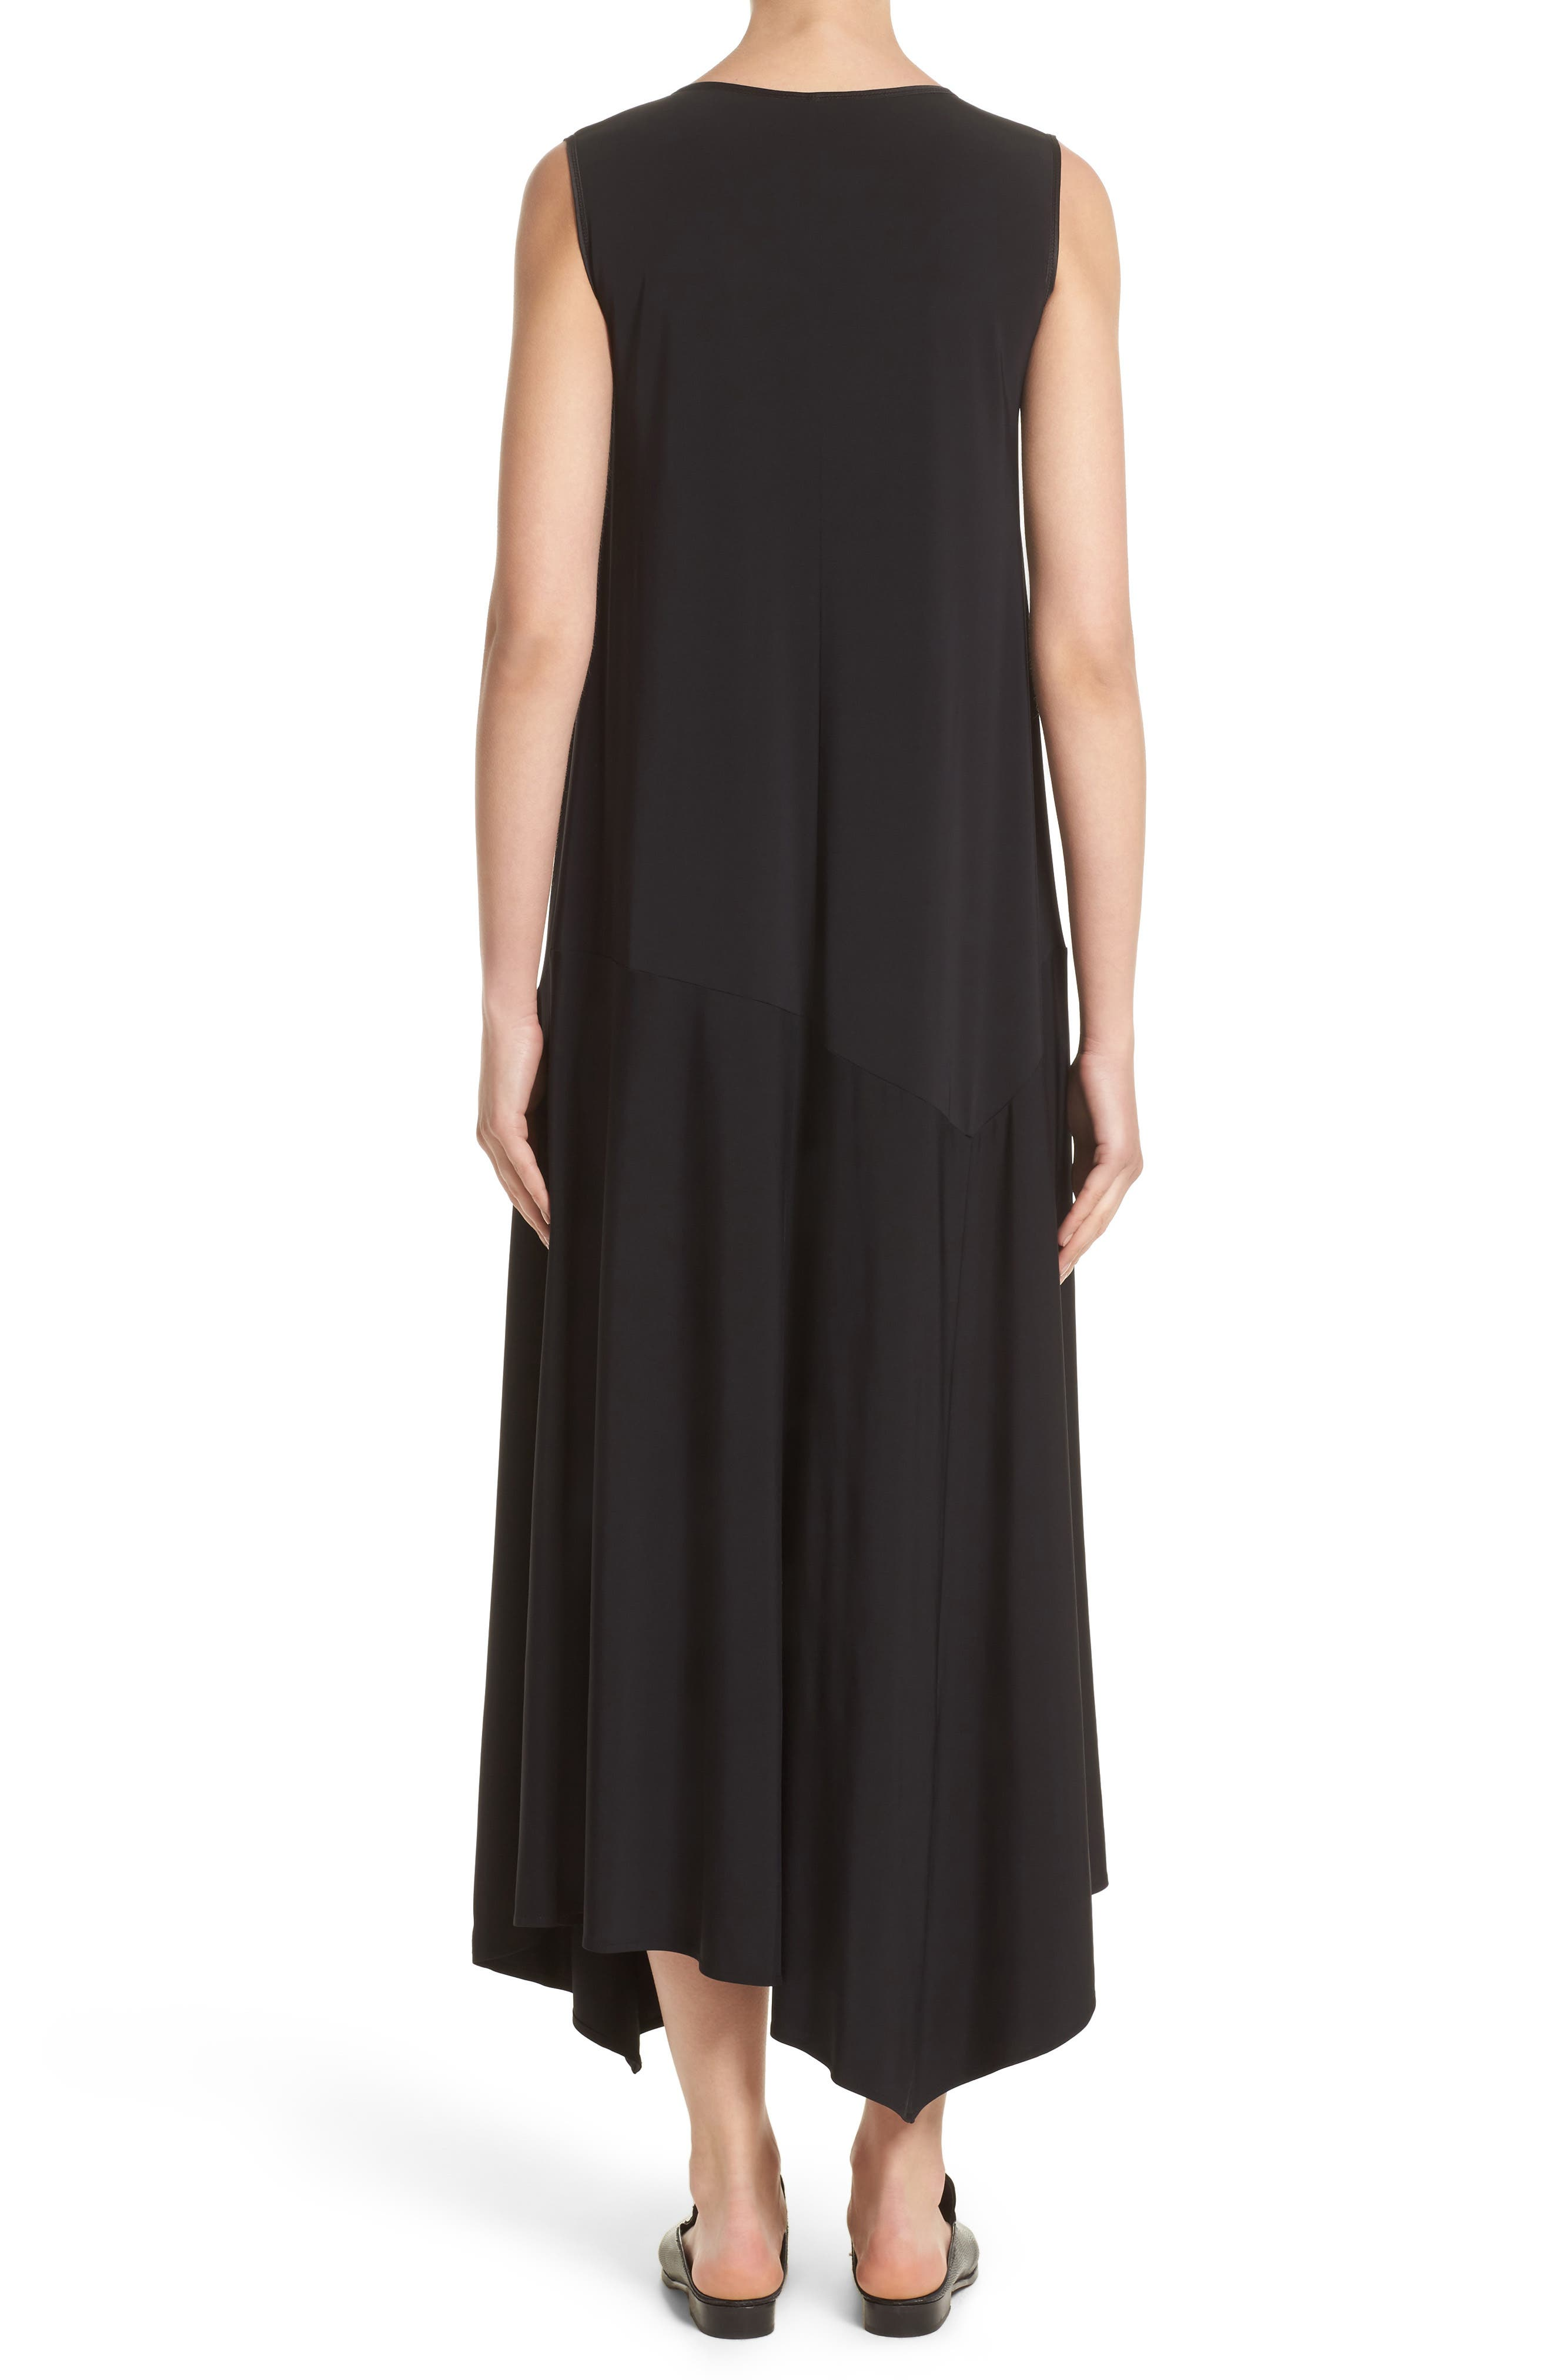 Cultivated Crepe Jersey Asymmetrical Dress,                             Alternate thumbnail 2, color,                             001